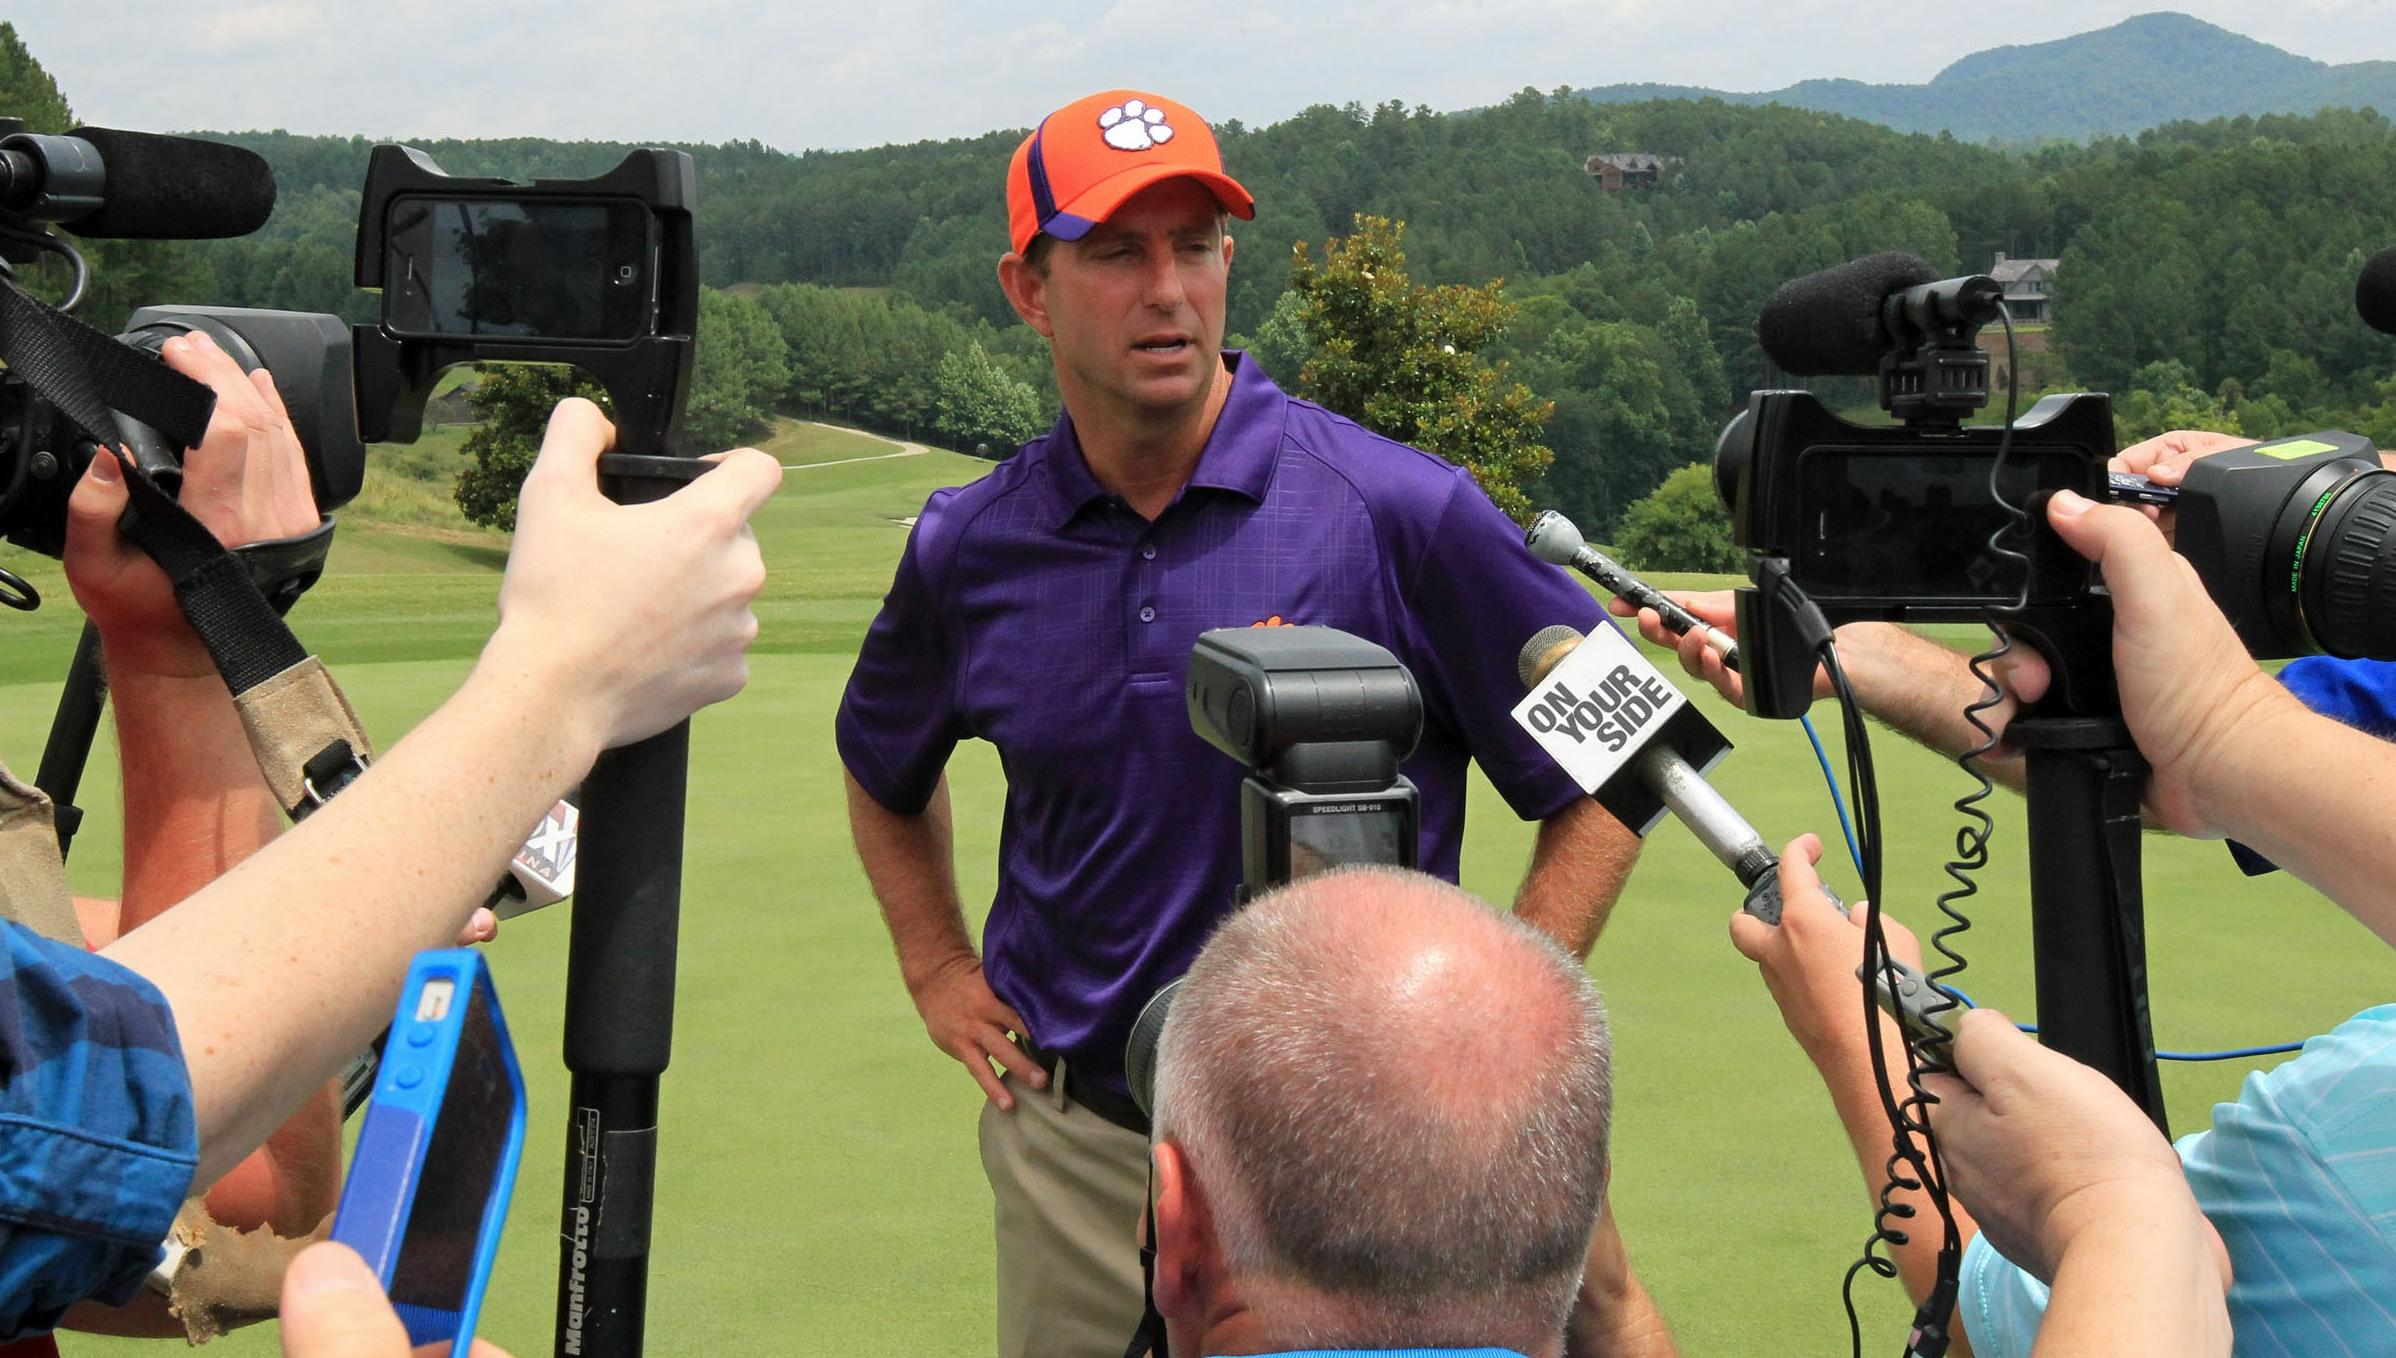 Sights & Sounds From the Swinney Media Golf Outing